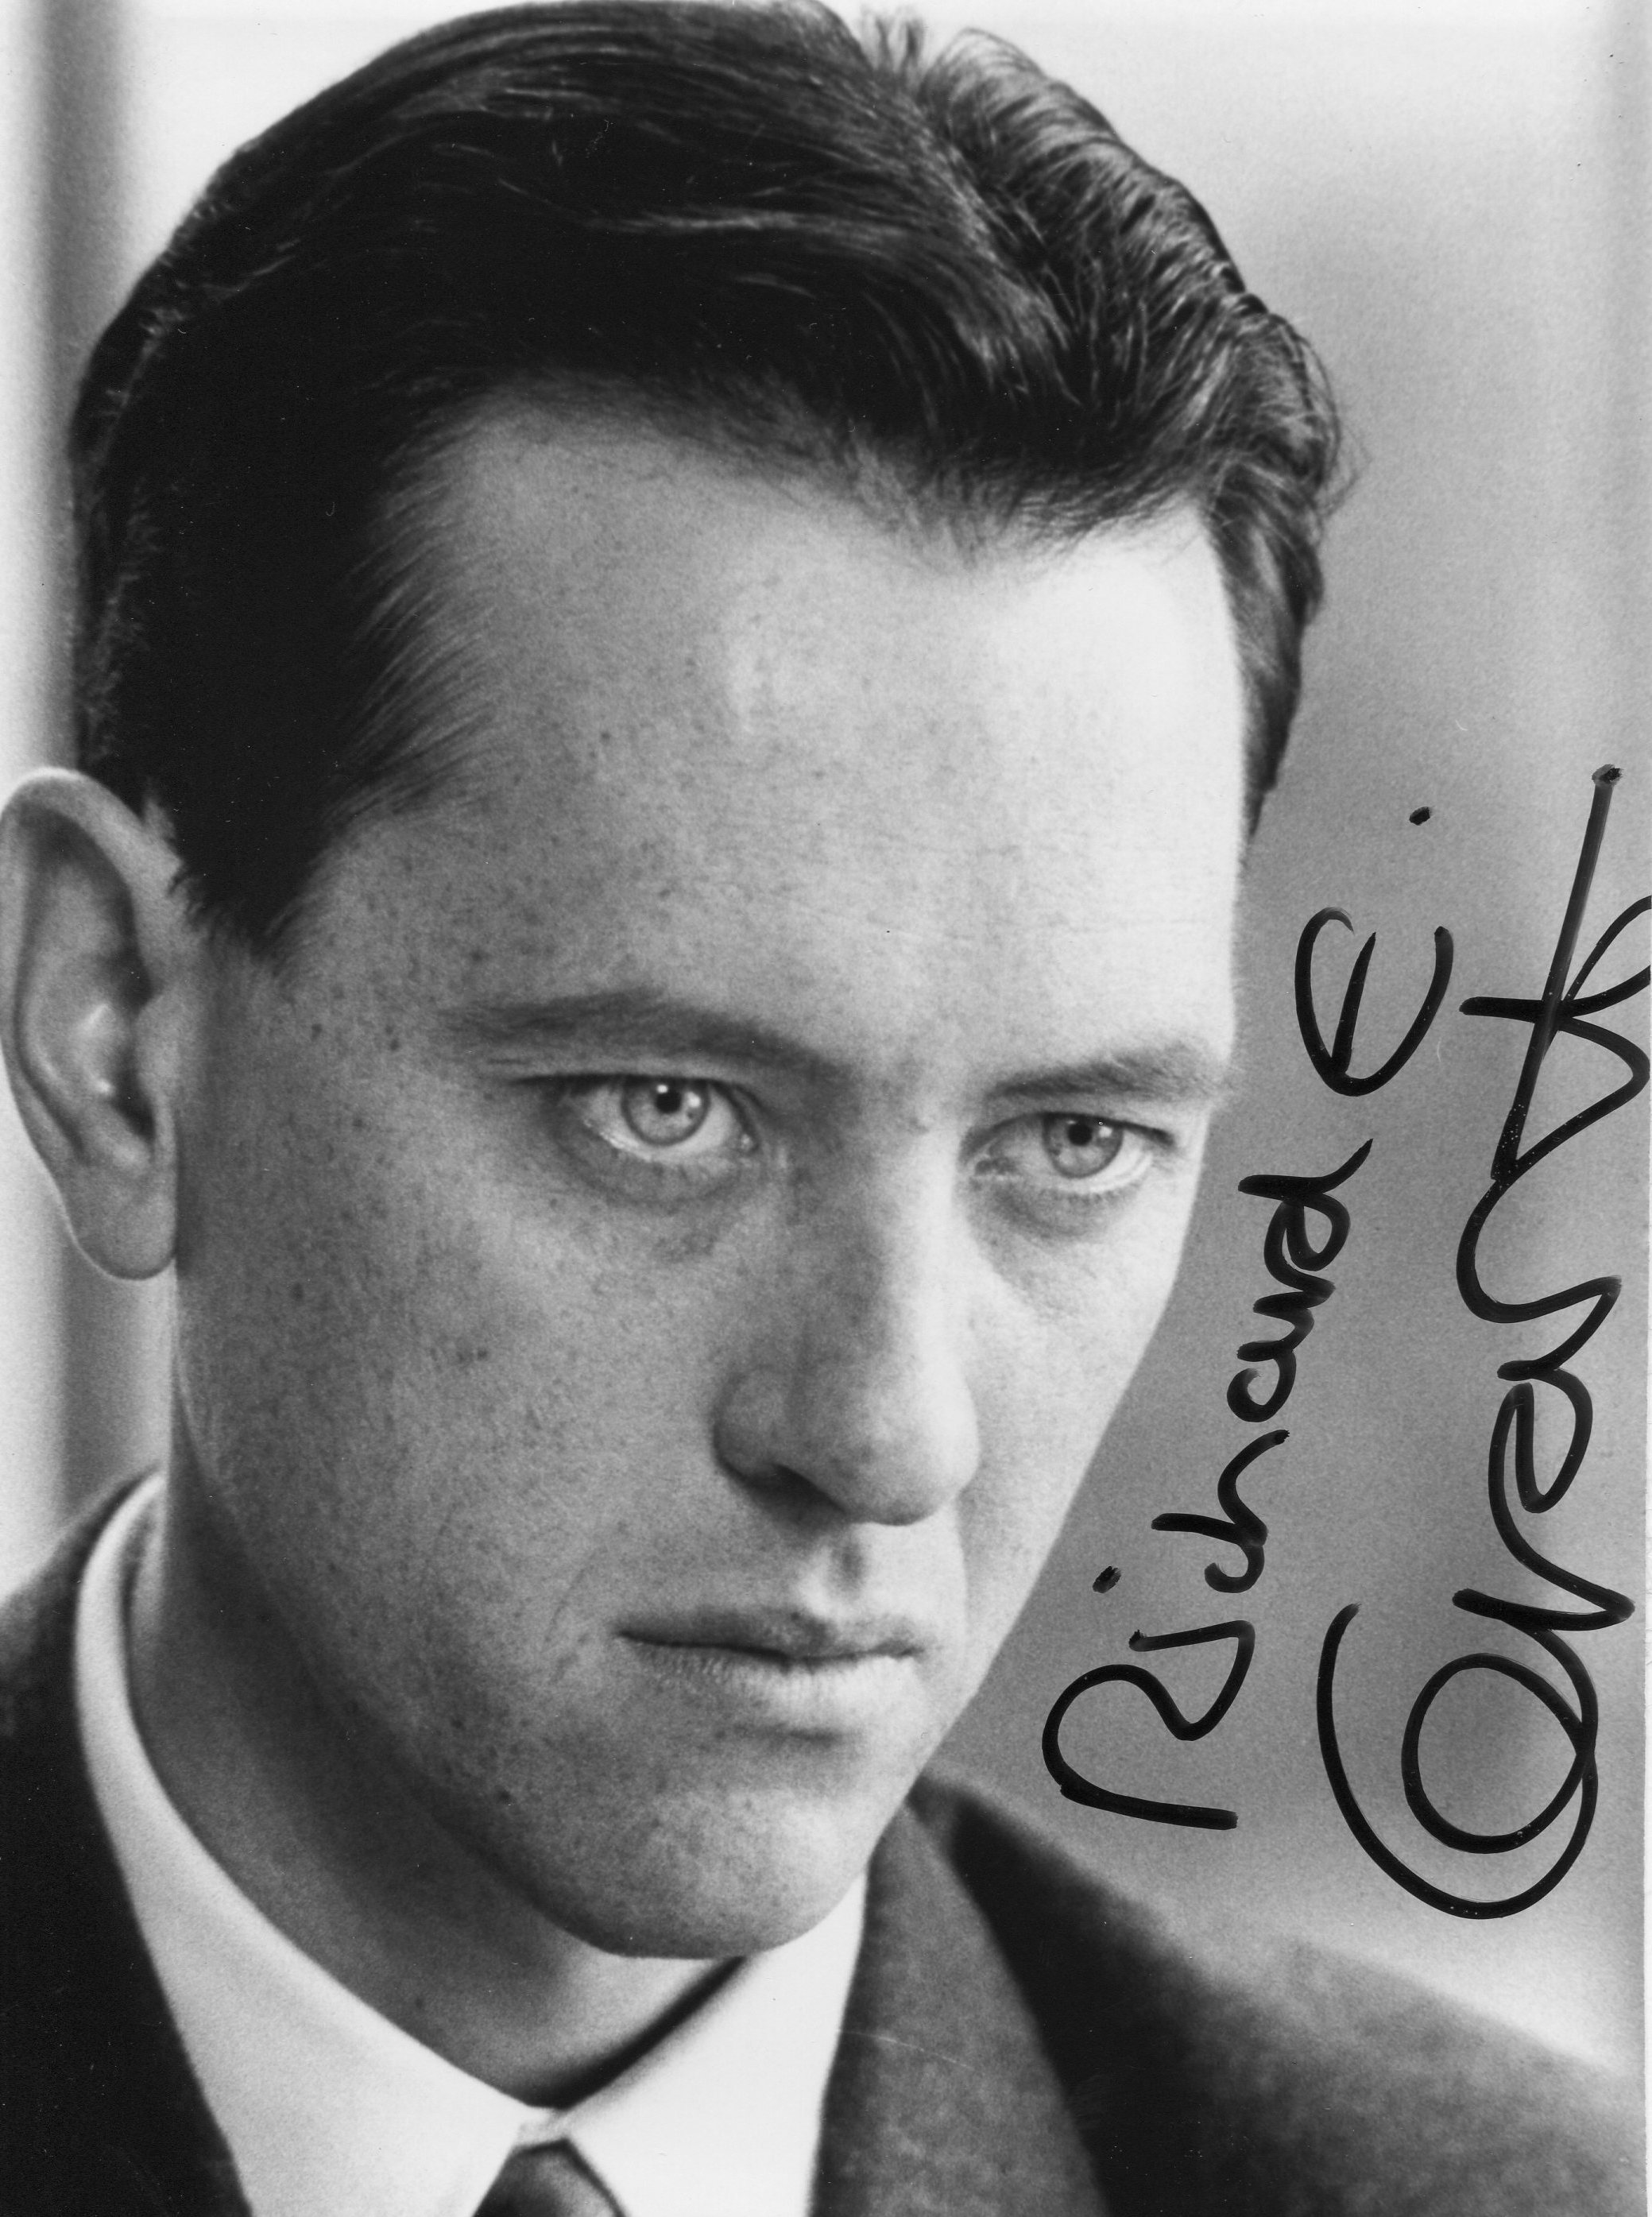 Richard E. Grant (born 1957 (born in Mbabane, Swaziland)